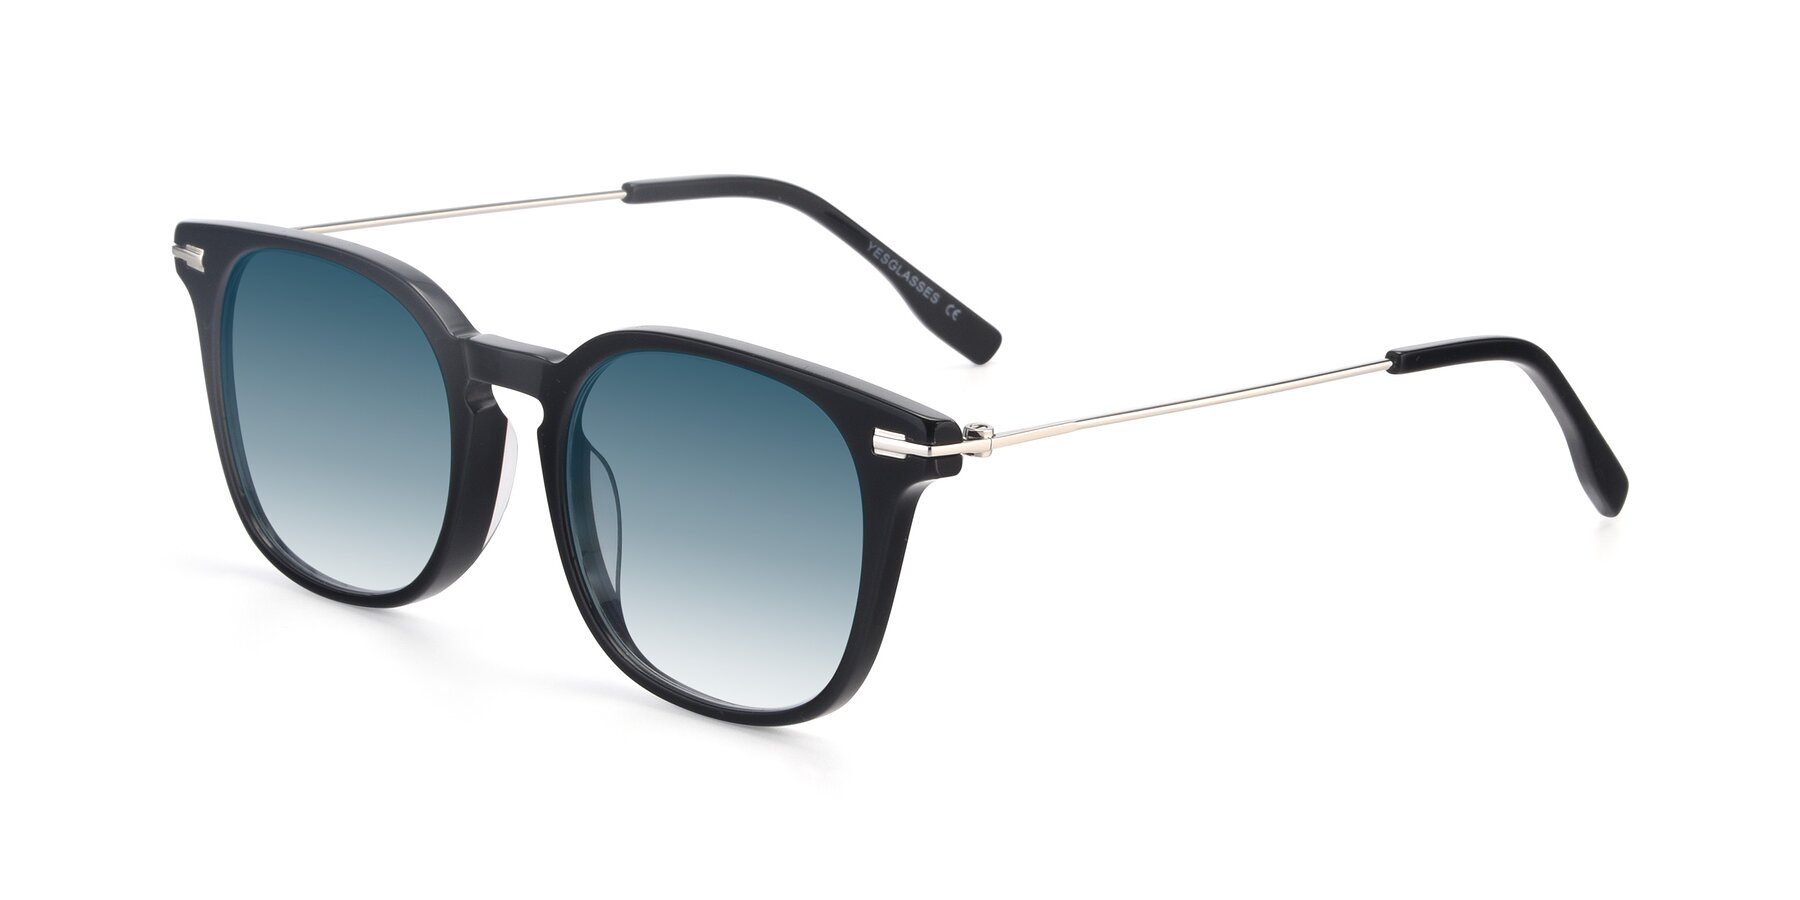 Angle of 17711 in Black with Blue Gradient Lenses